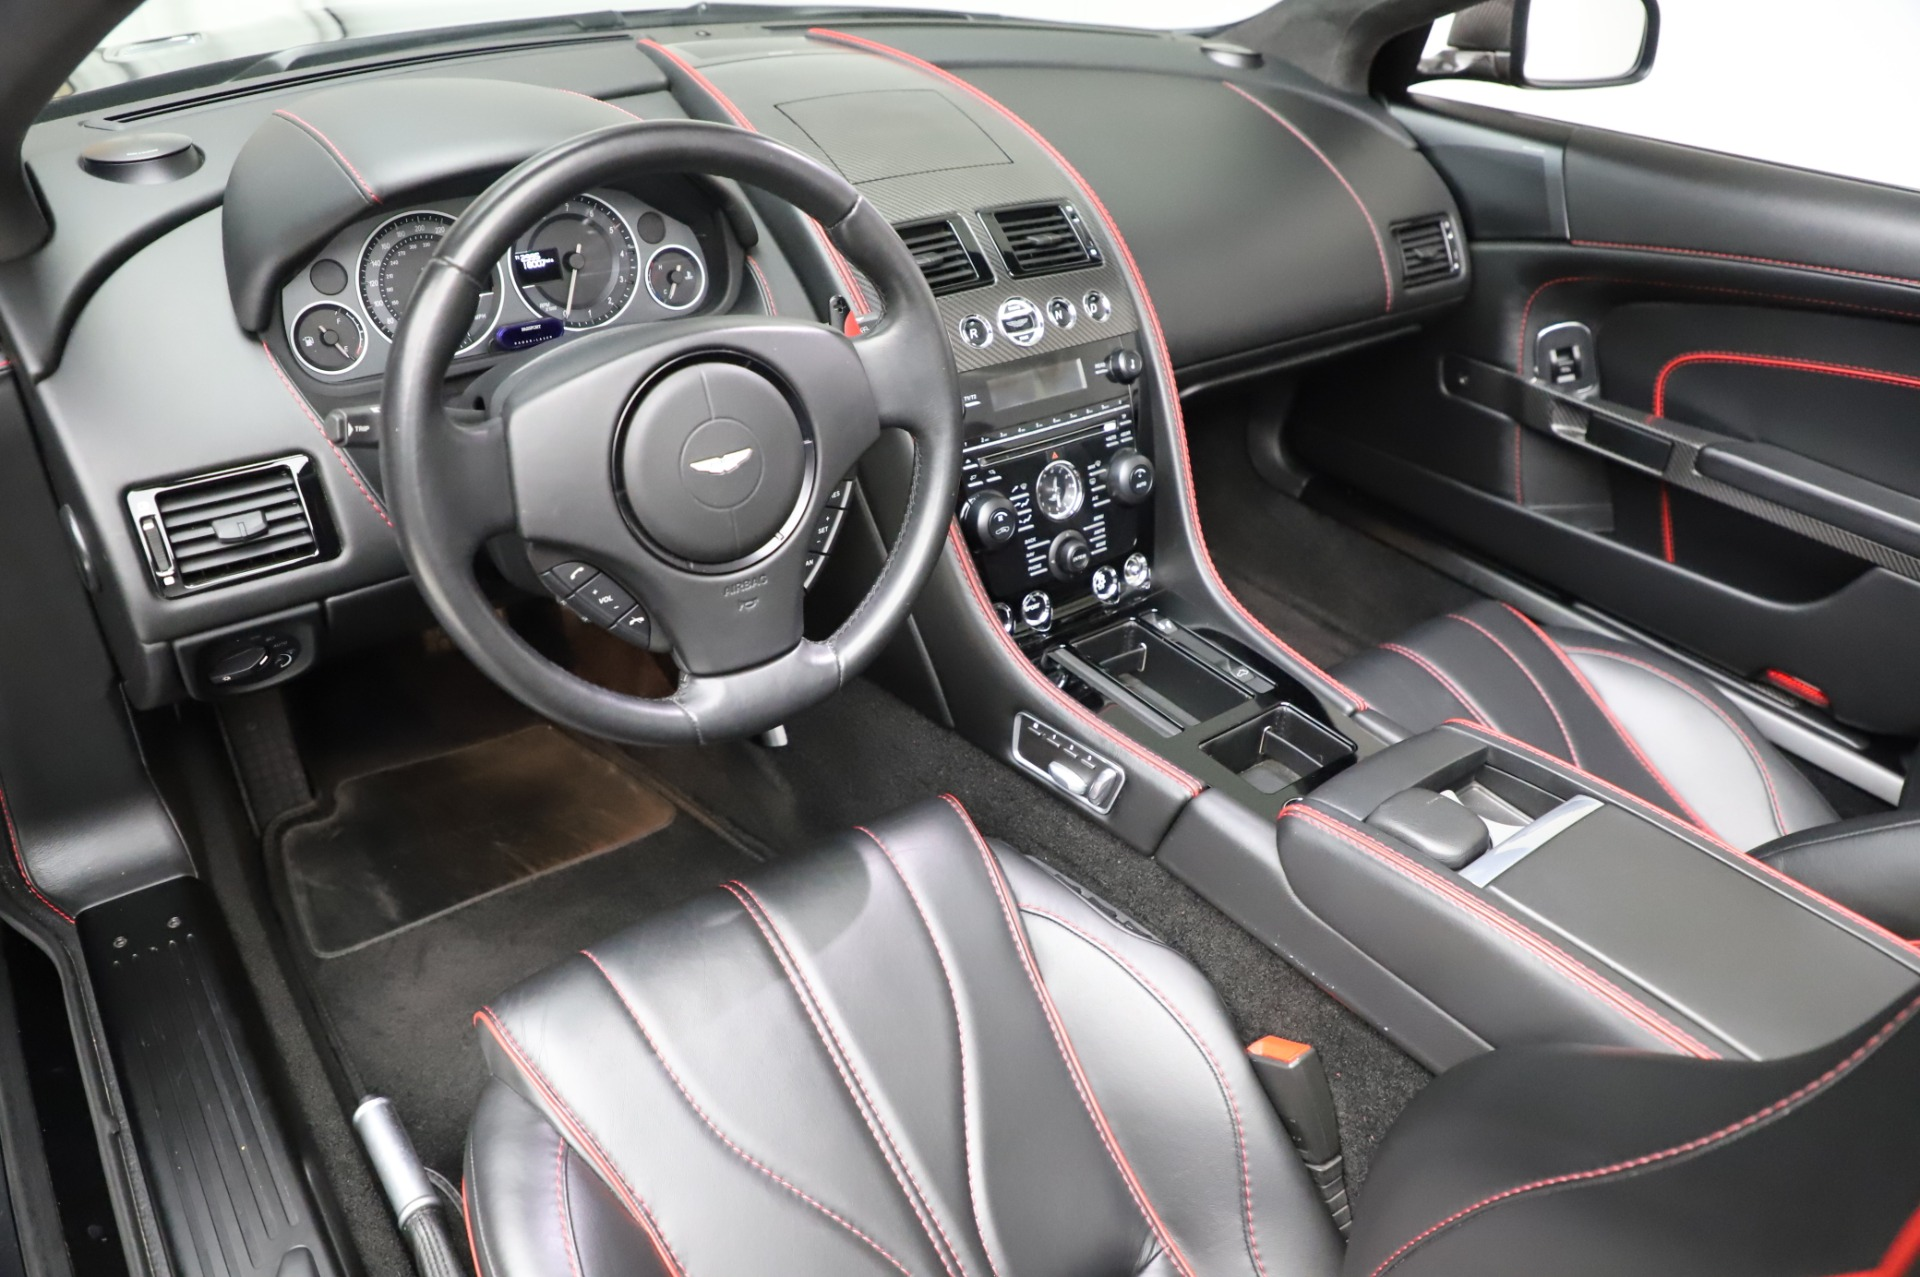 Used 2015 Aston Martin DB9 Convertible For Sale In Westport, CT 1919_p19